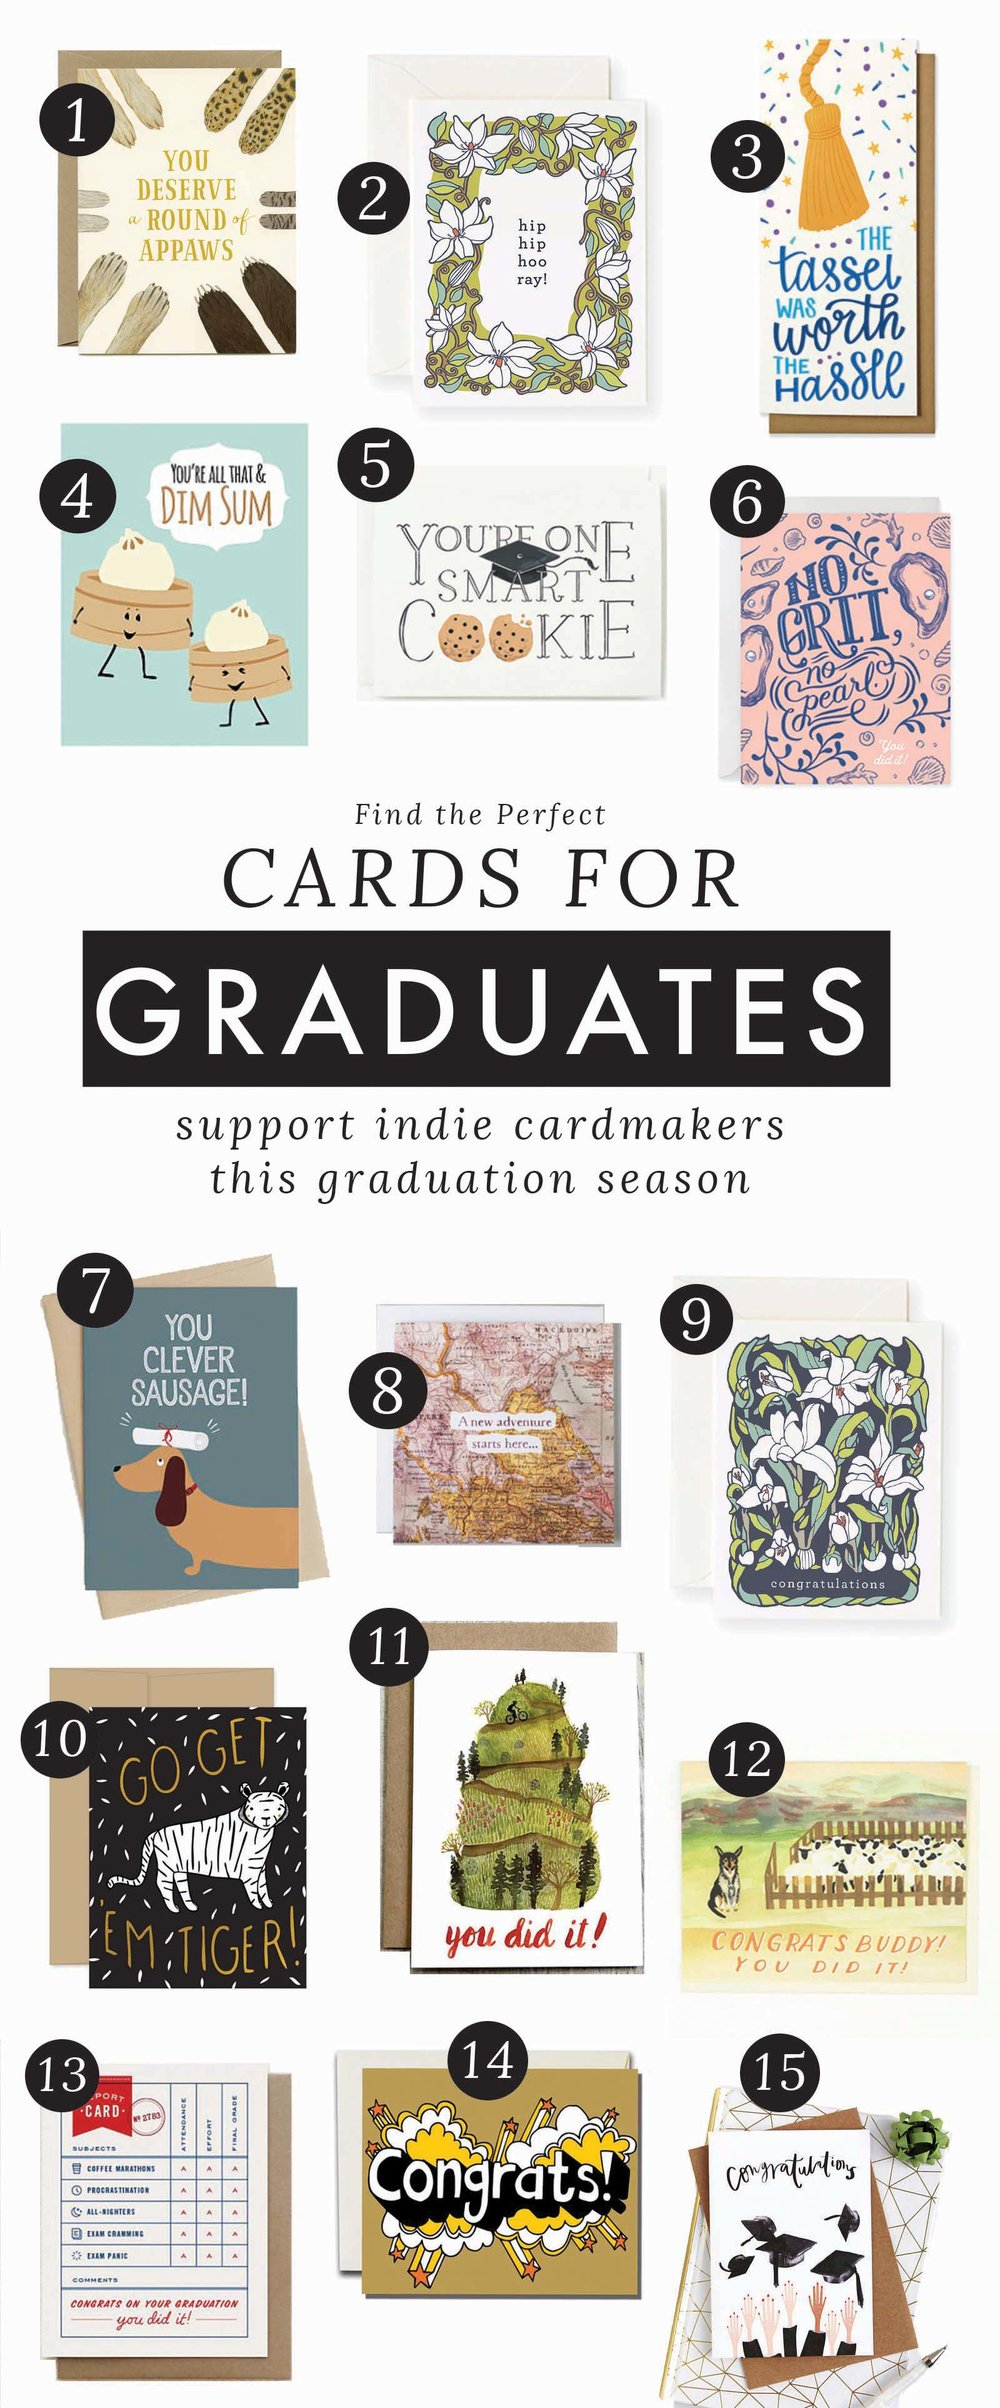 Find the Perfect Graduation Card | Graduation Card Ideas, Congrats Grad, Cards for Class of 2018 Graduates | from the Root & Branch Paper Co. Blog